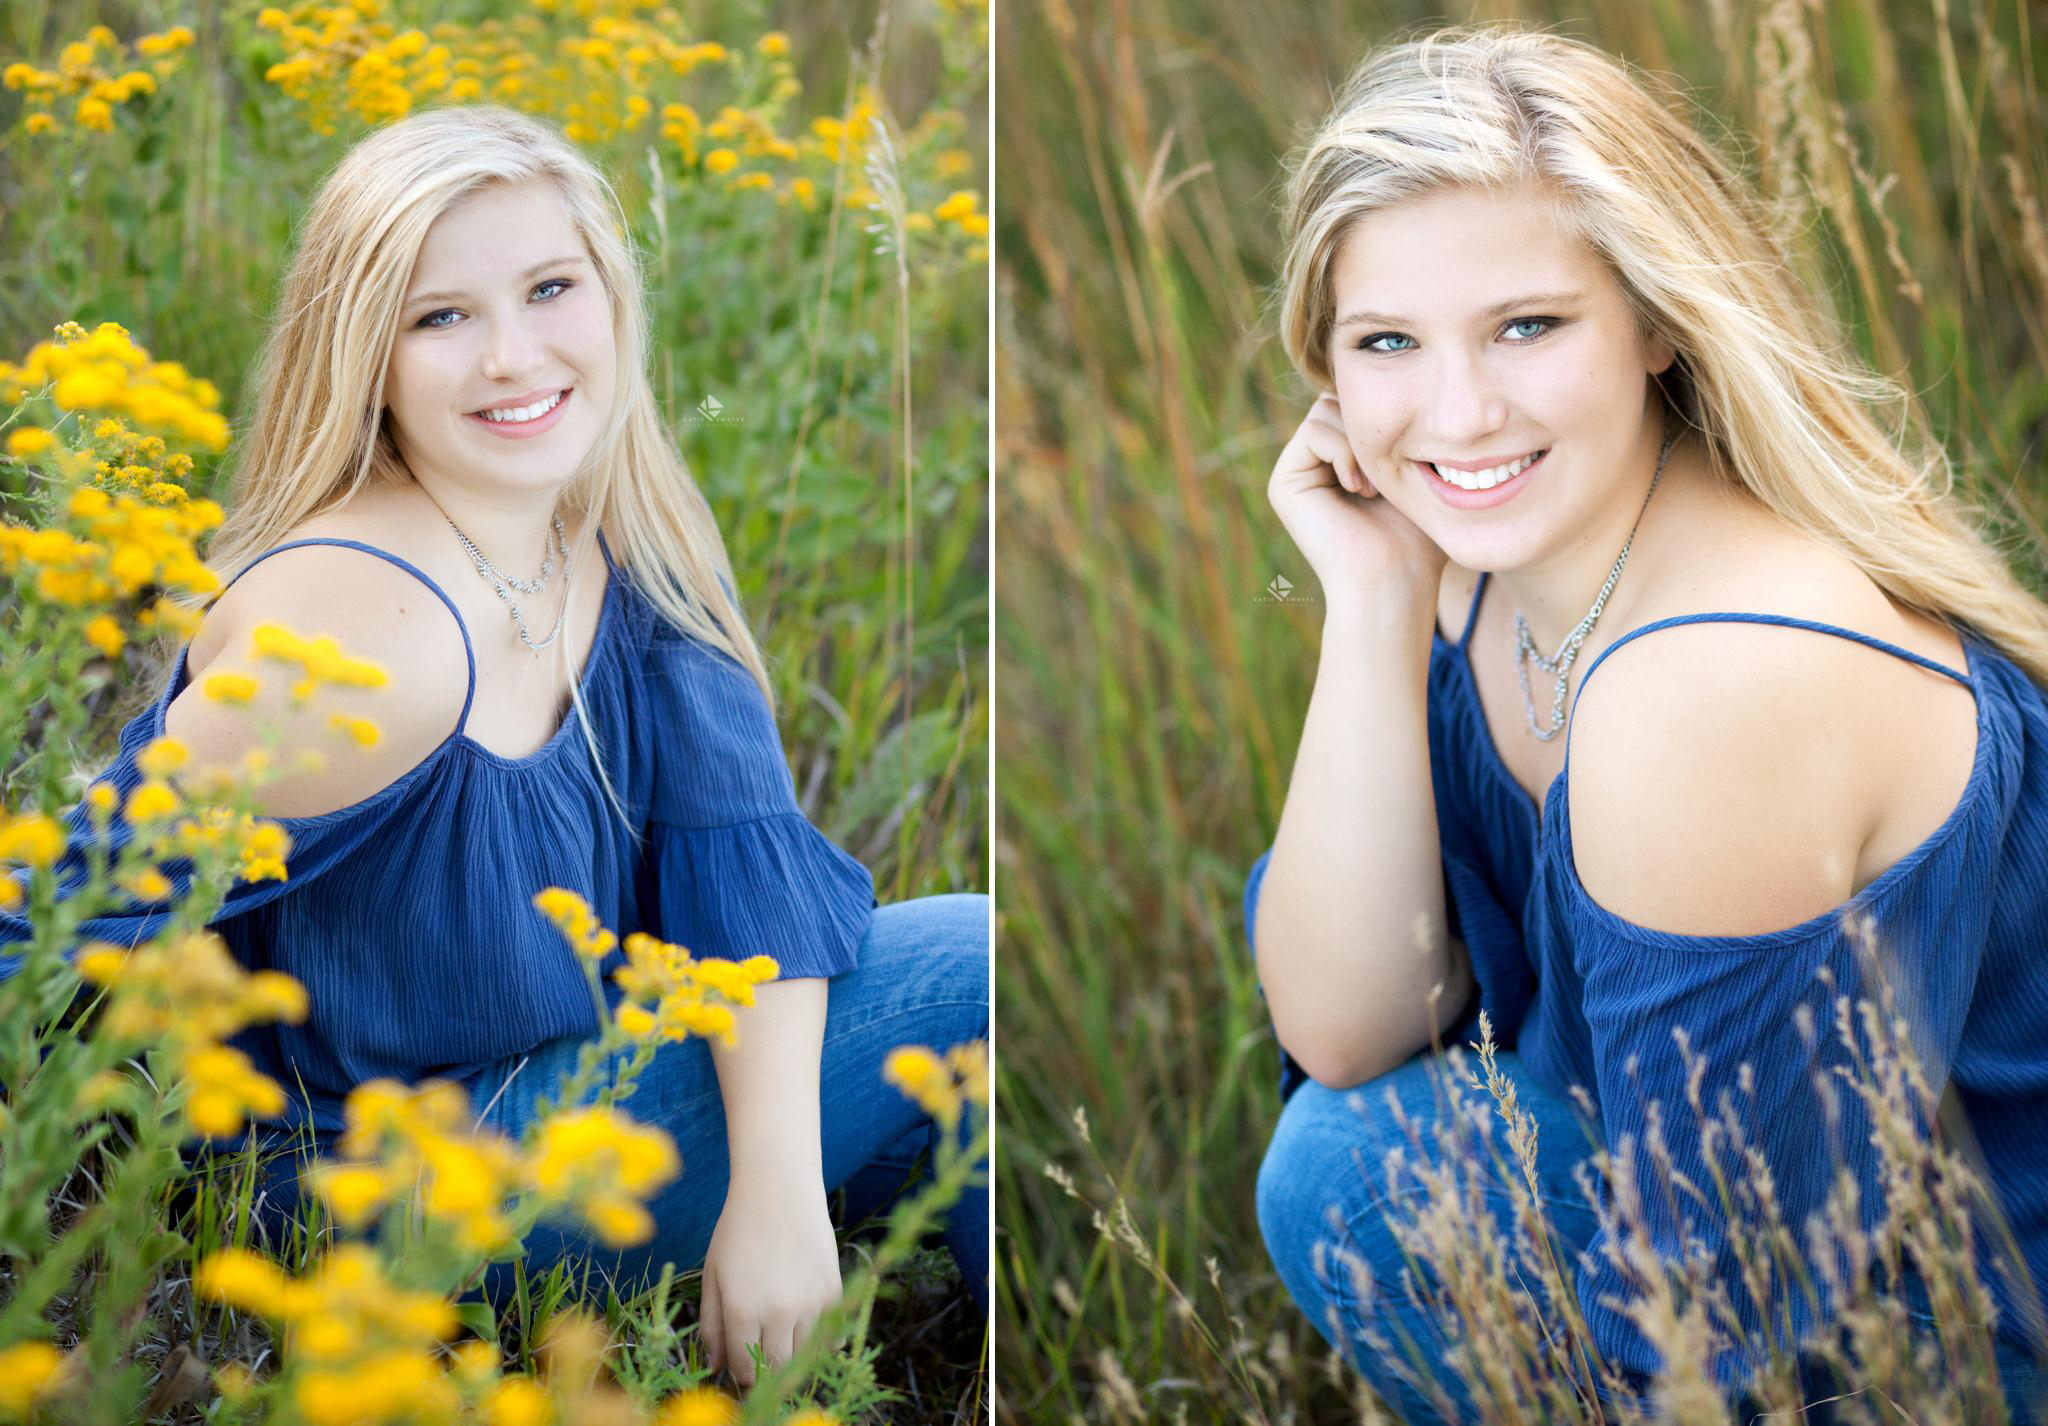 blonde senior girl in blue top sitting in tall grass and mustard seed